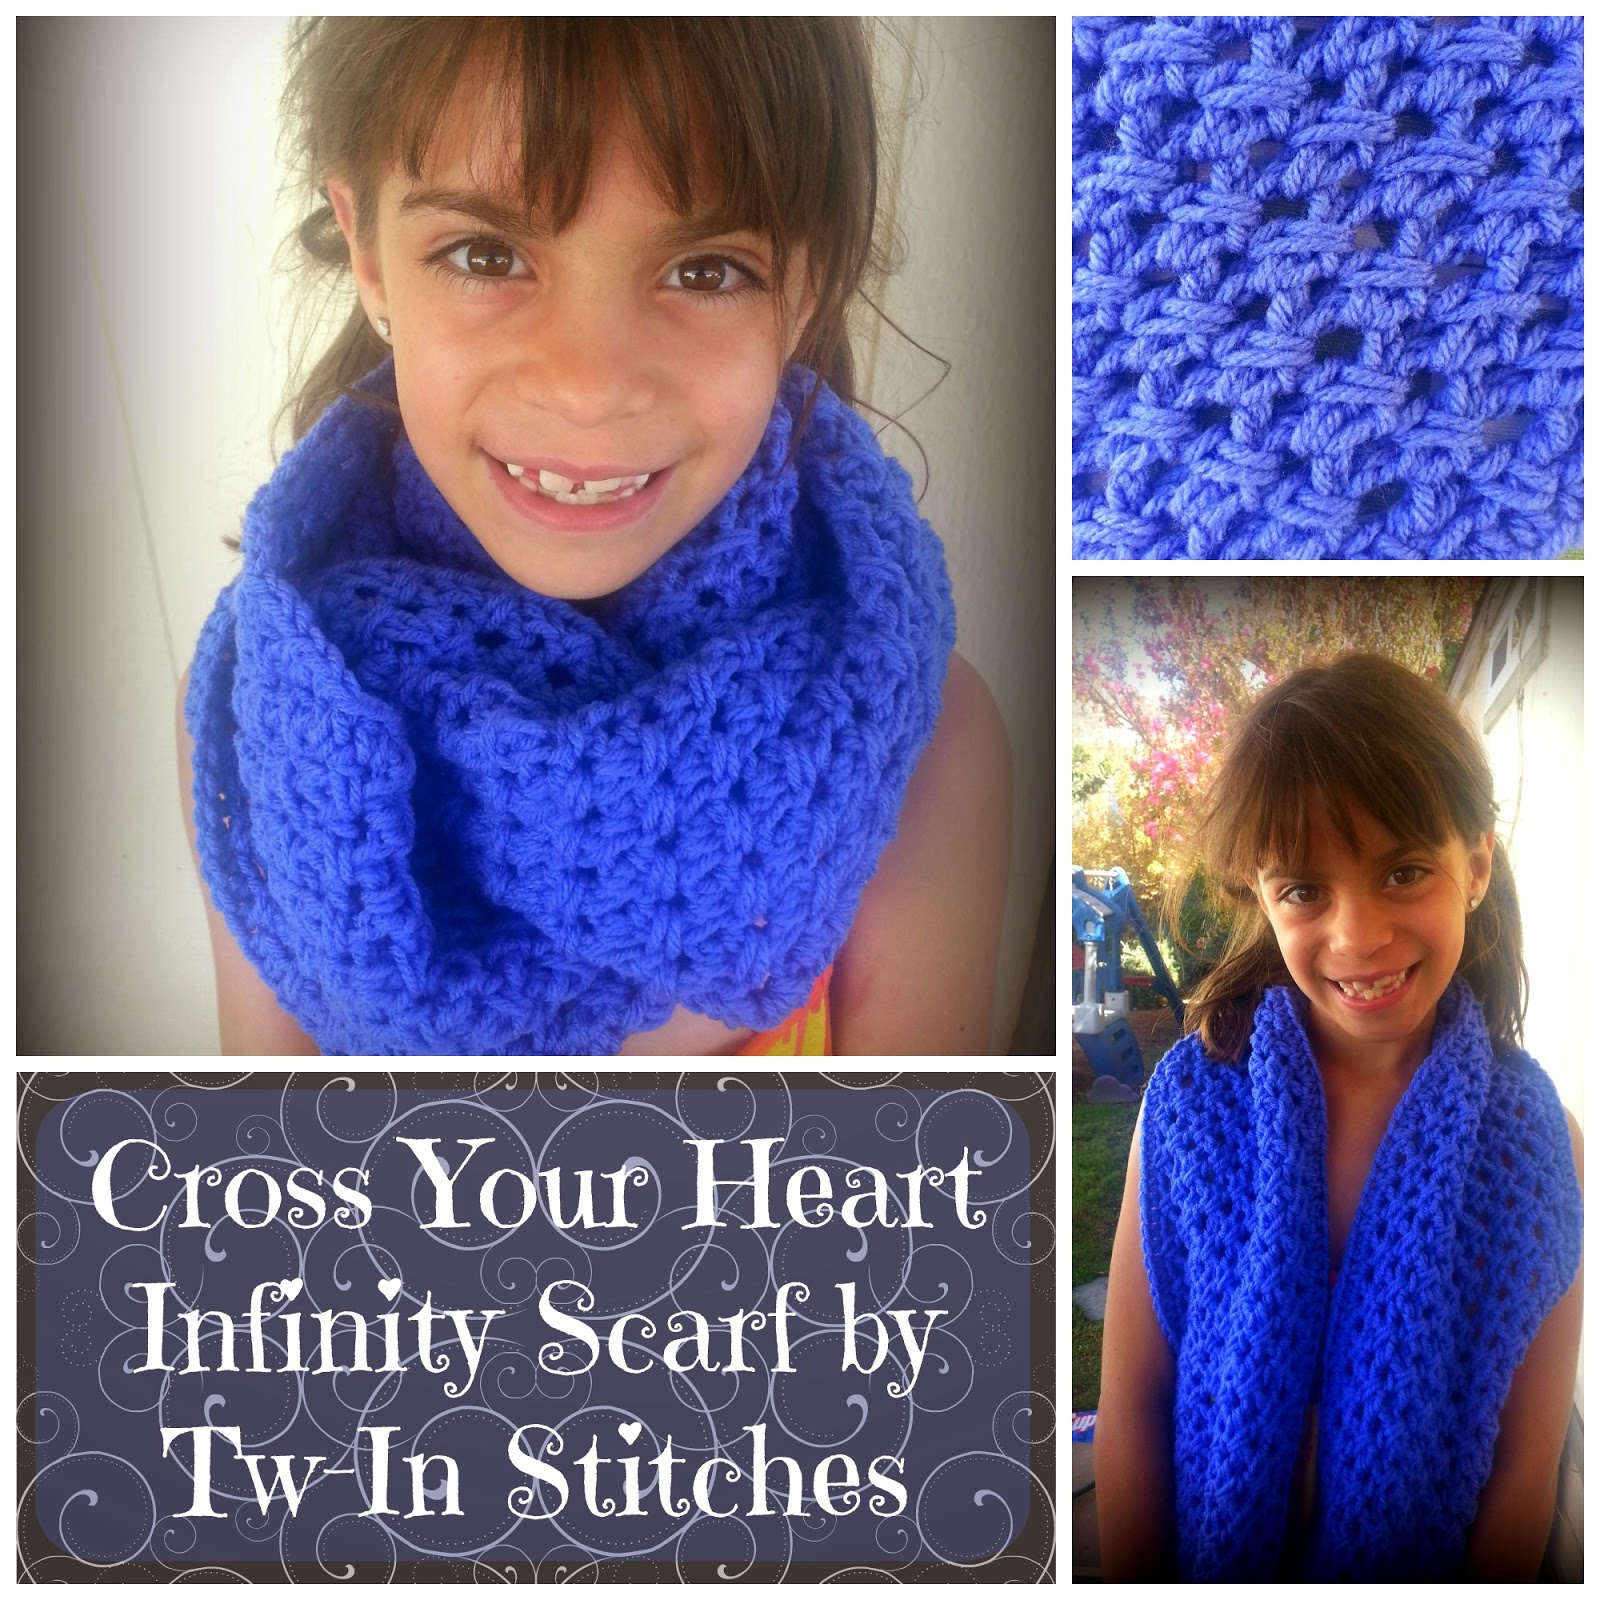 Cross Your Heart Infinity Scarf